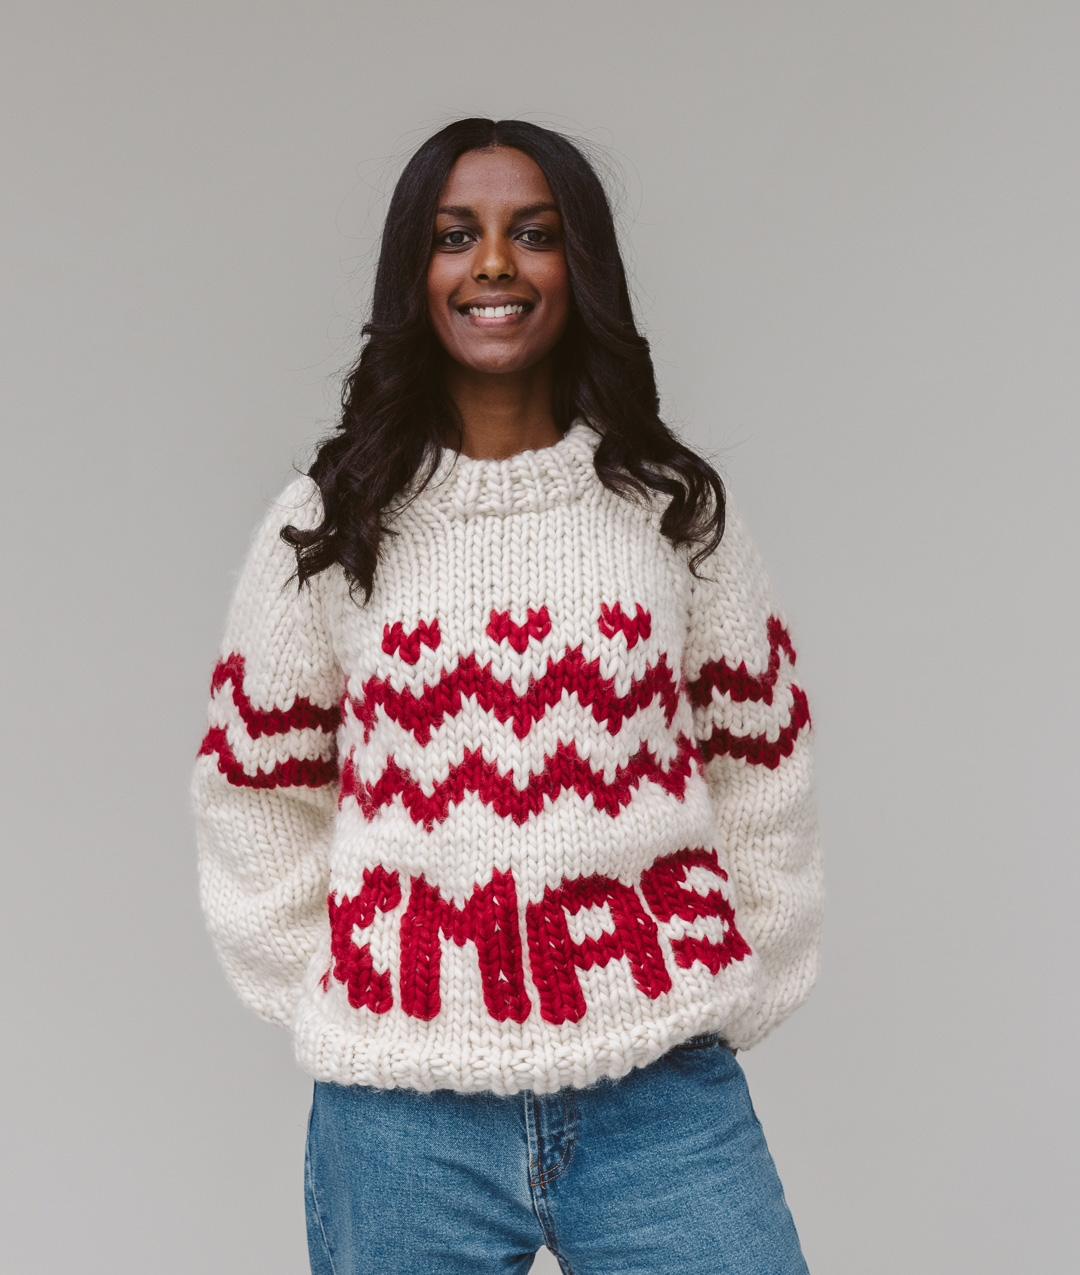 Maglie e Top - Lana - MERRY XMAS JUMPER - FOR HER - 1